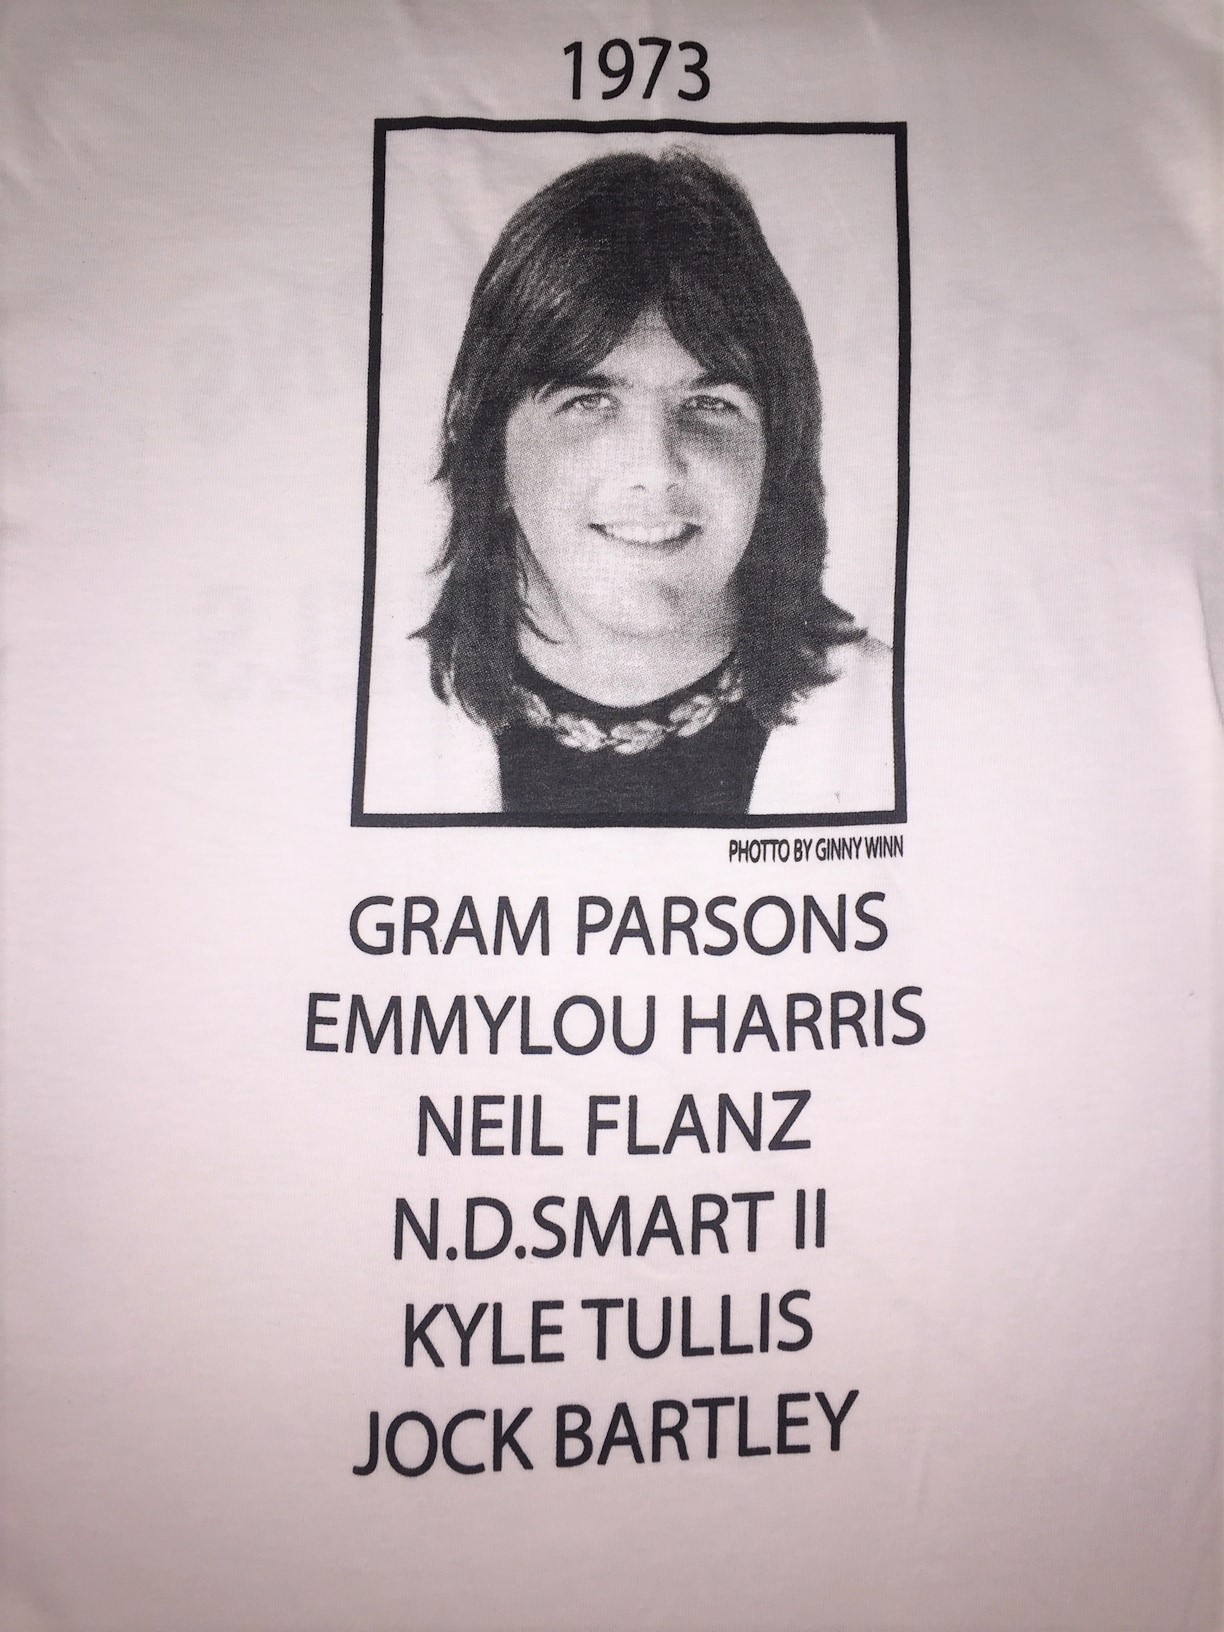 Gram Parsons Fallen Angels T-shirt back